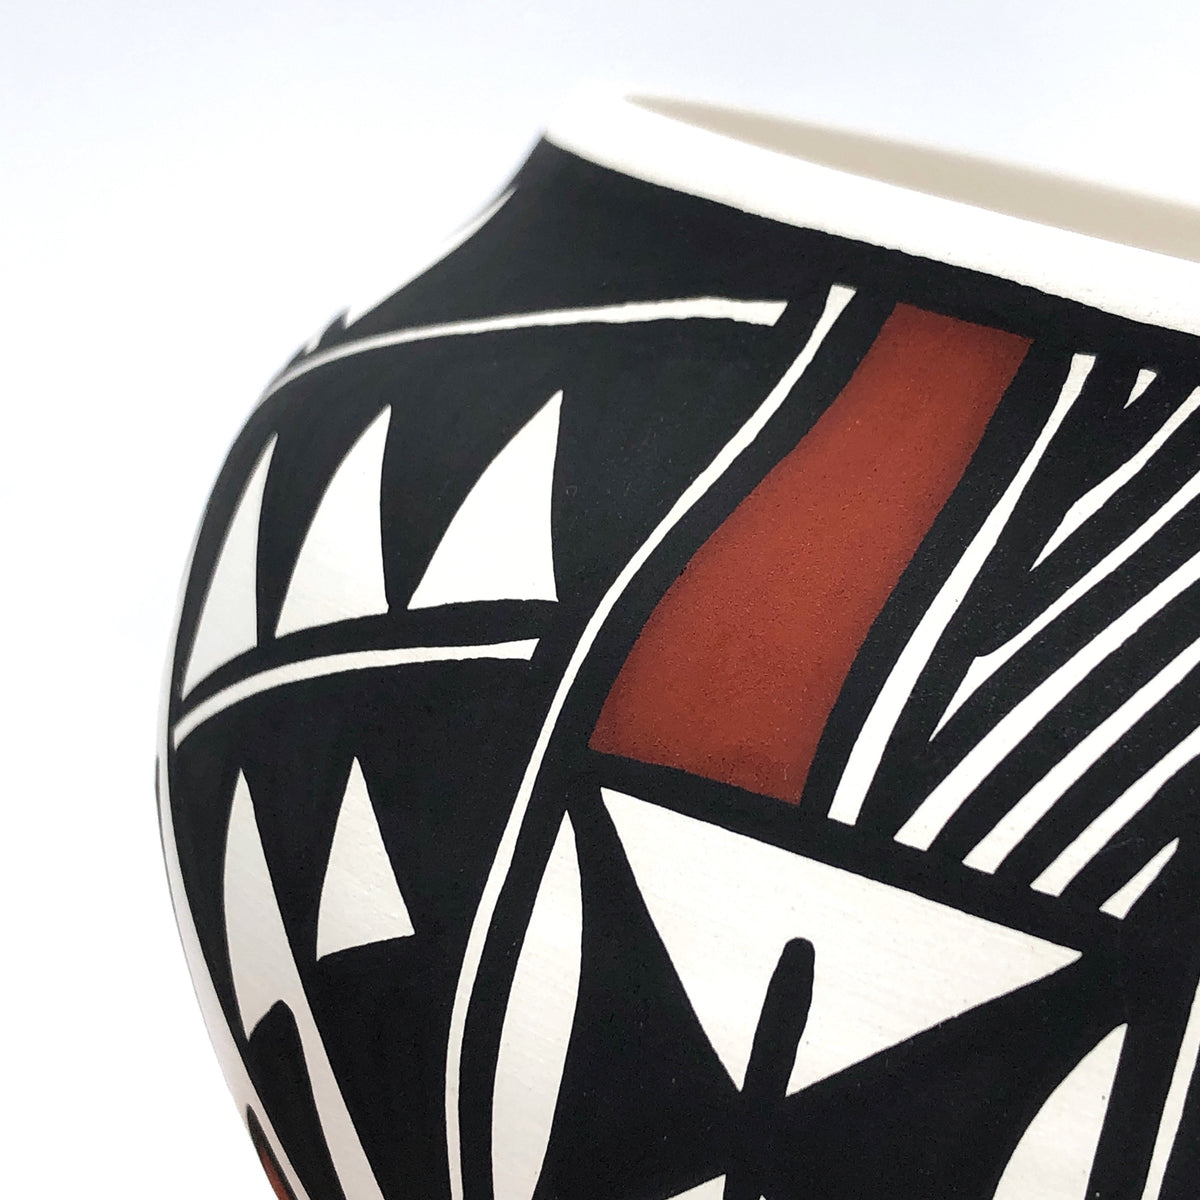 Small Handpainted Acoma Pot II by Nicole Victorino